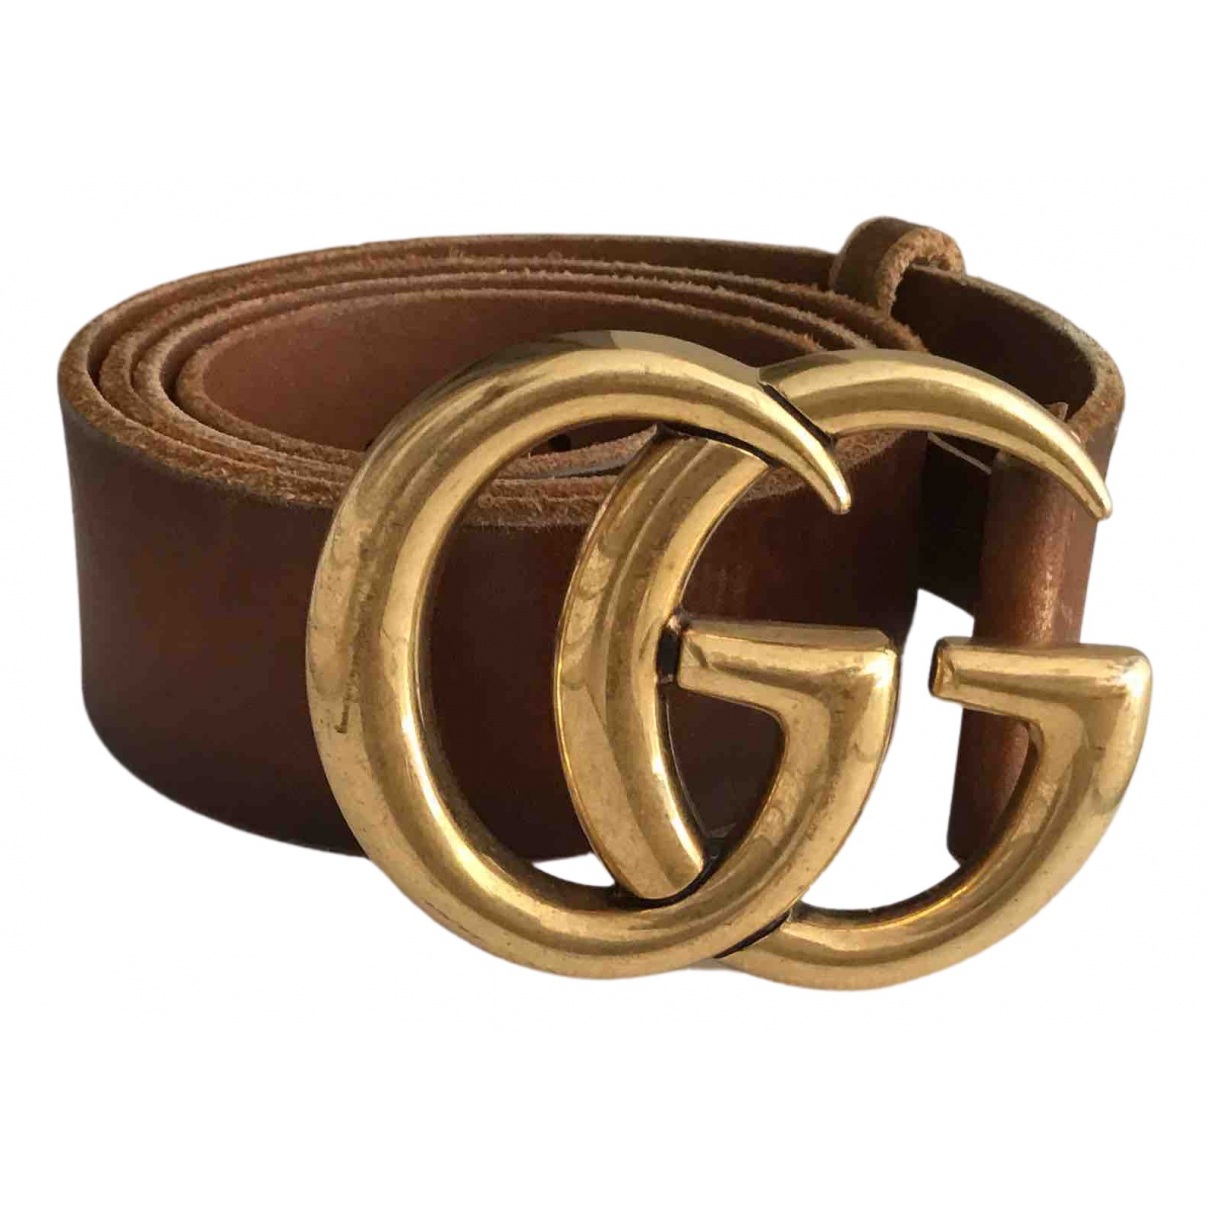 Gucci GG Buckle Brown Leather belt for Women 95 cm